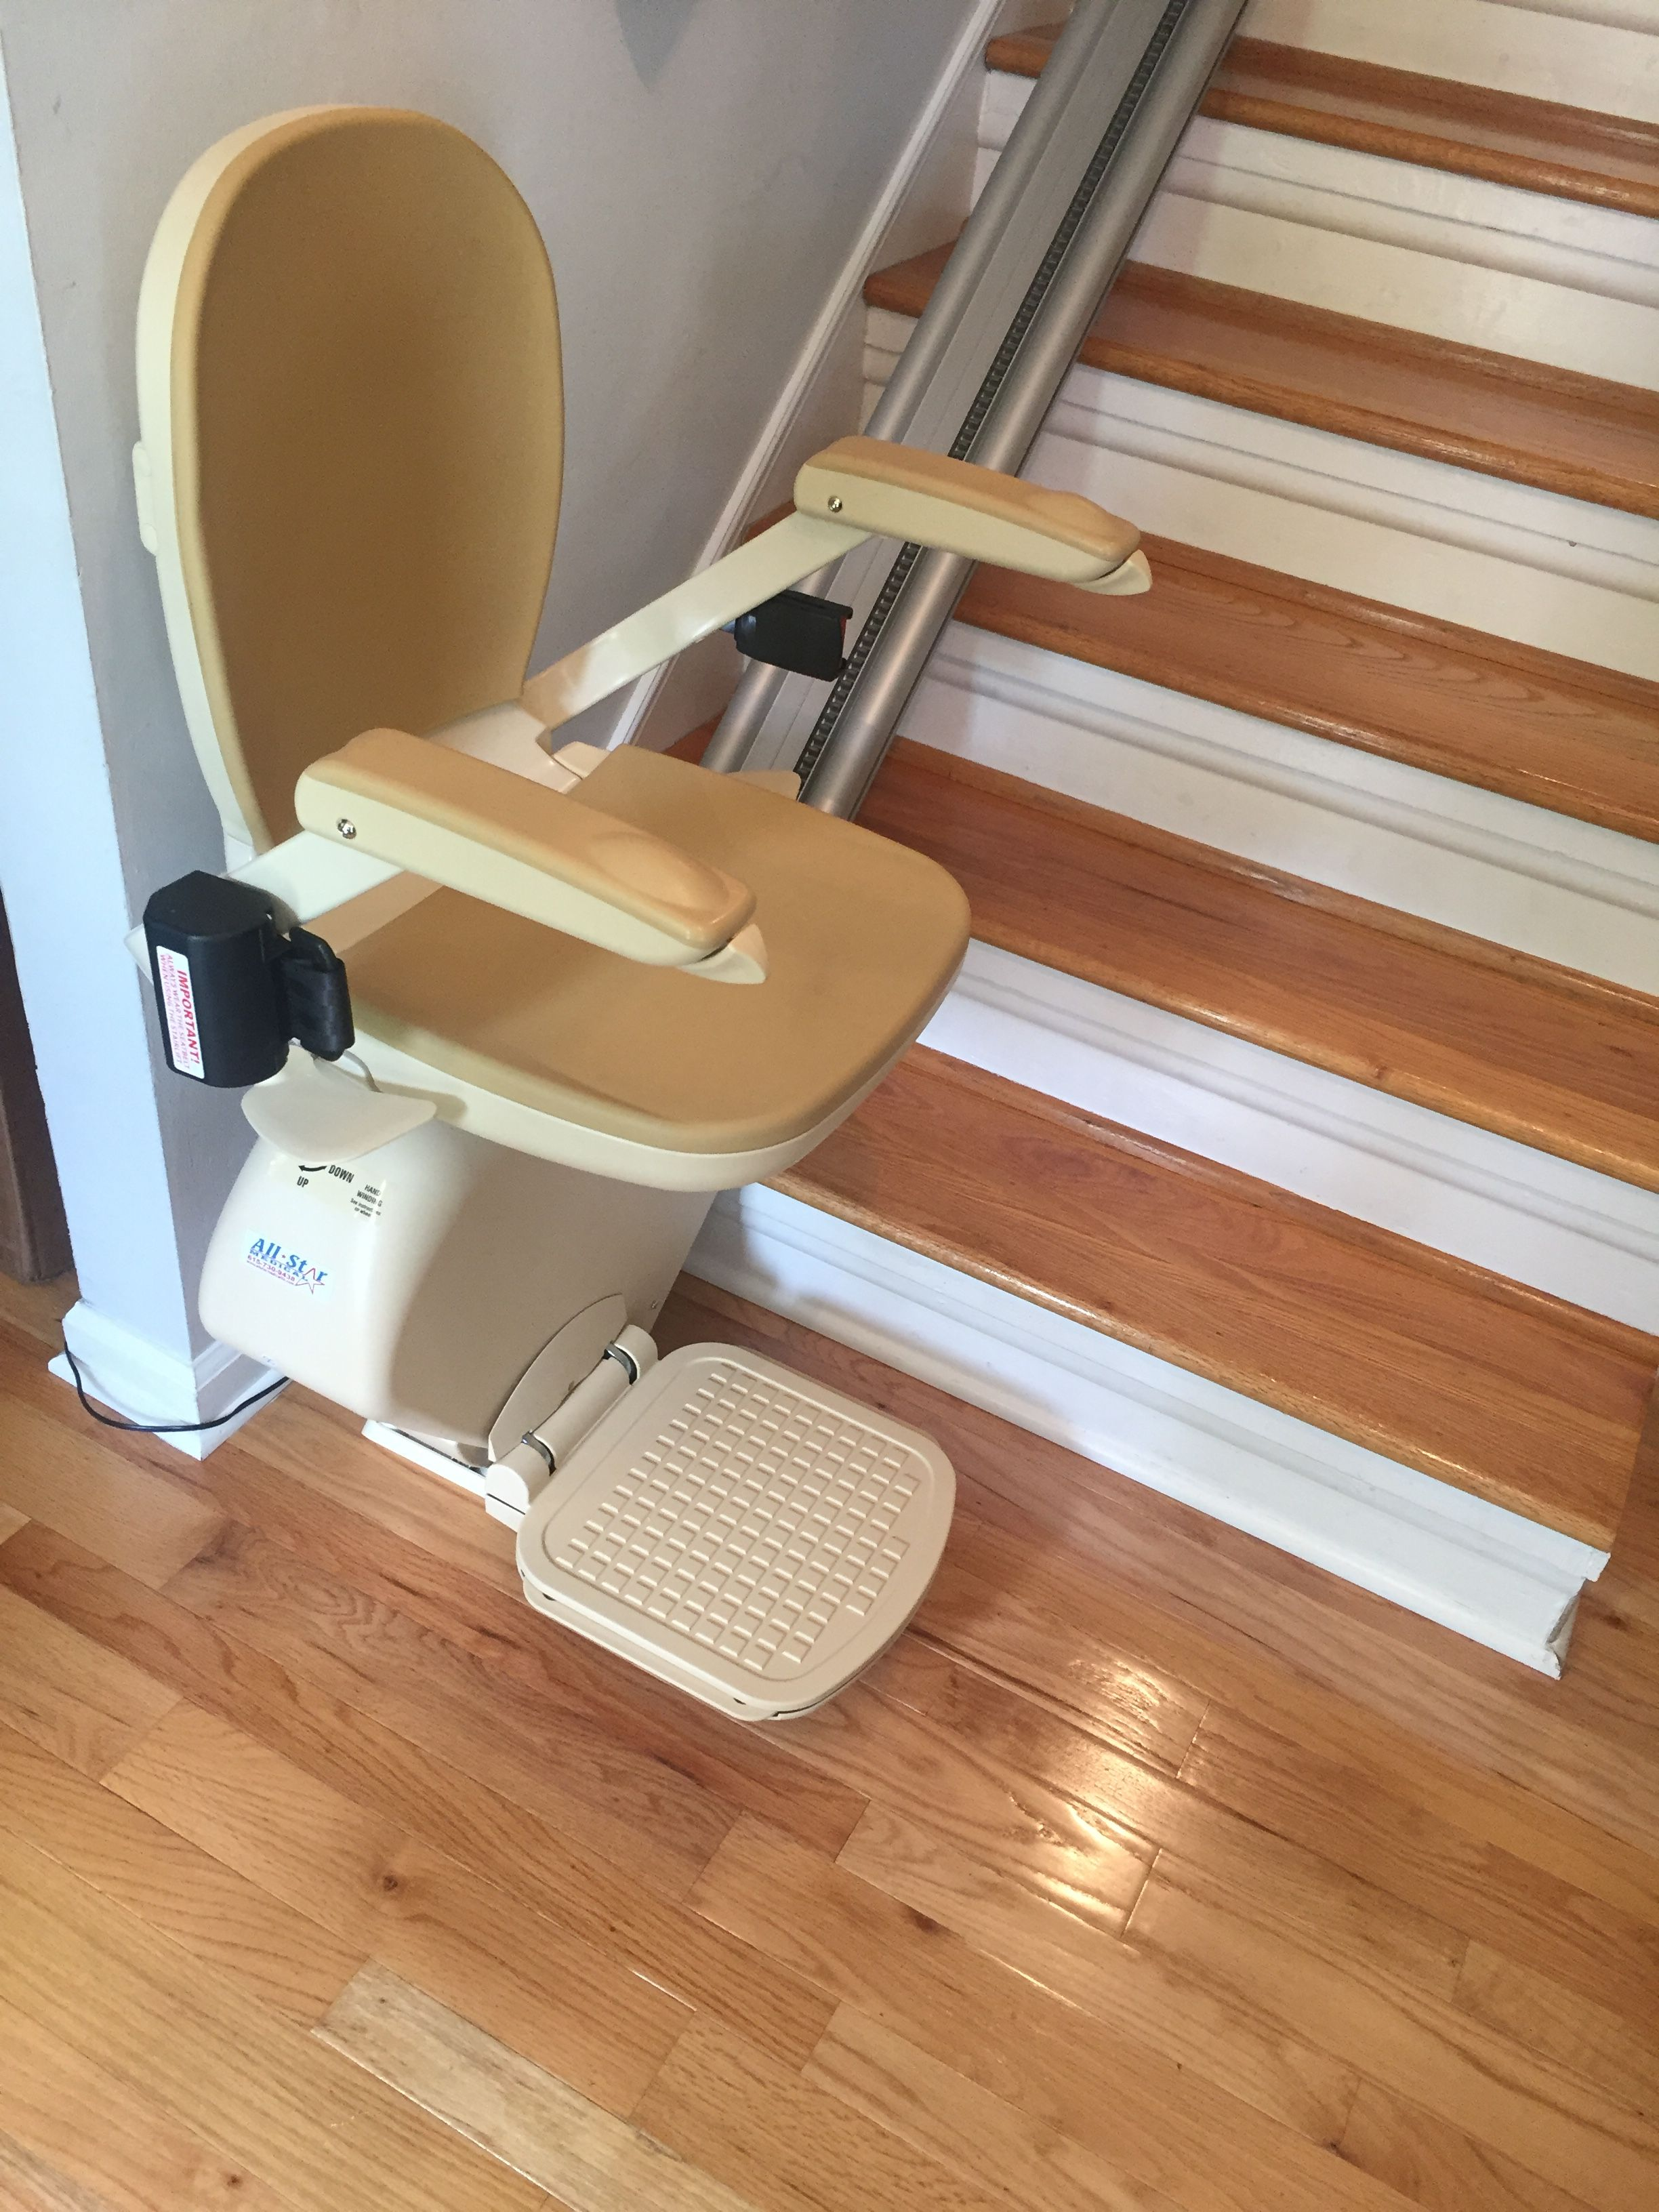 A recent stair lift install from all star medical call